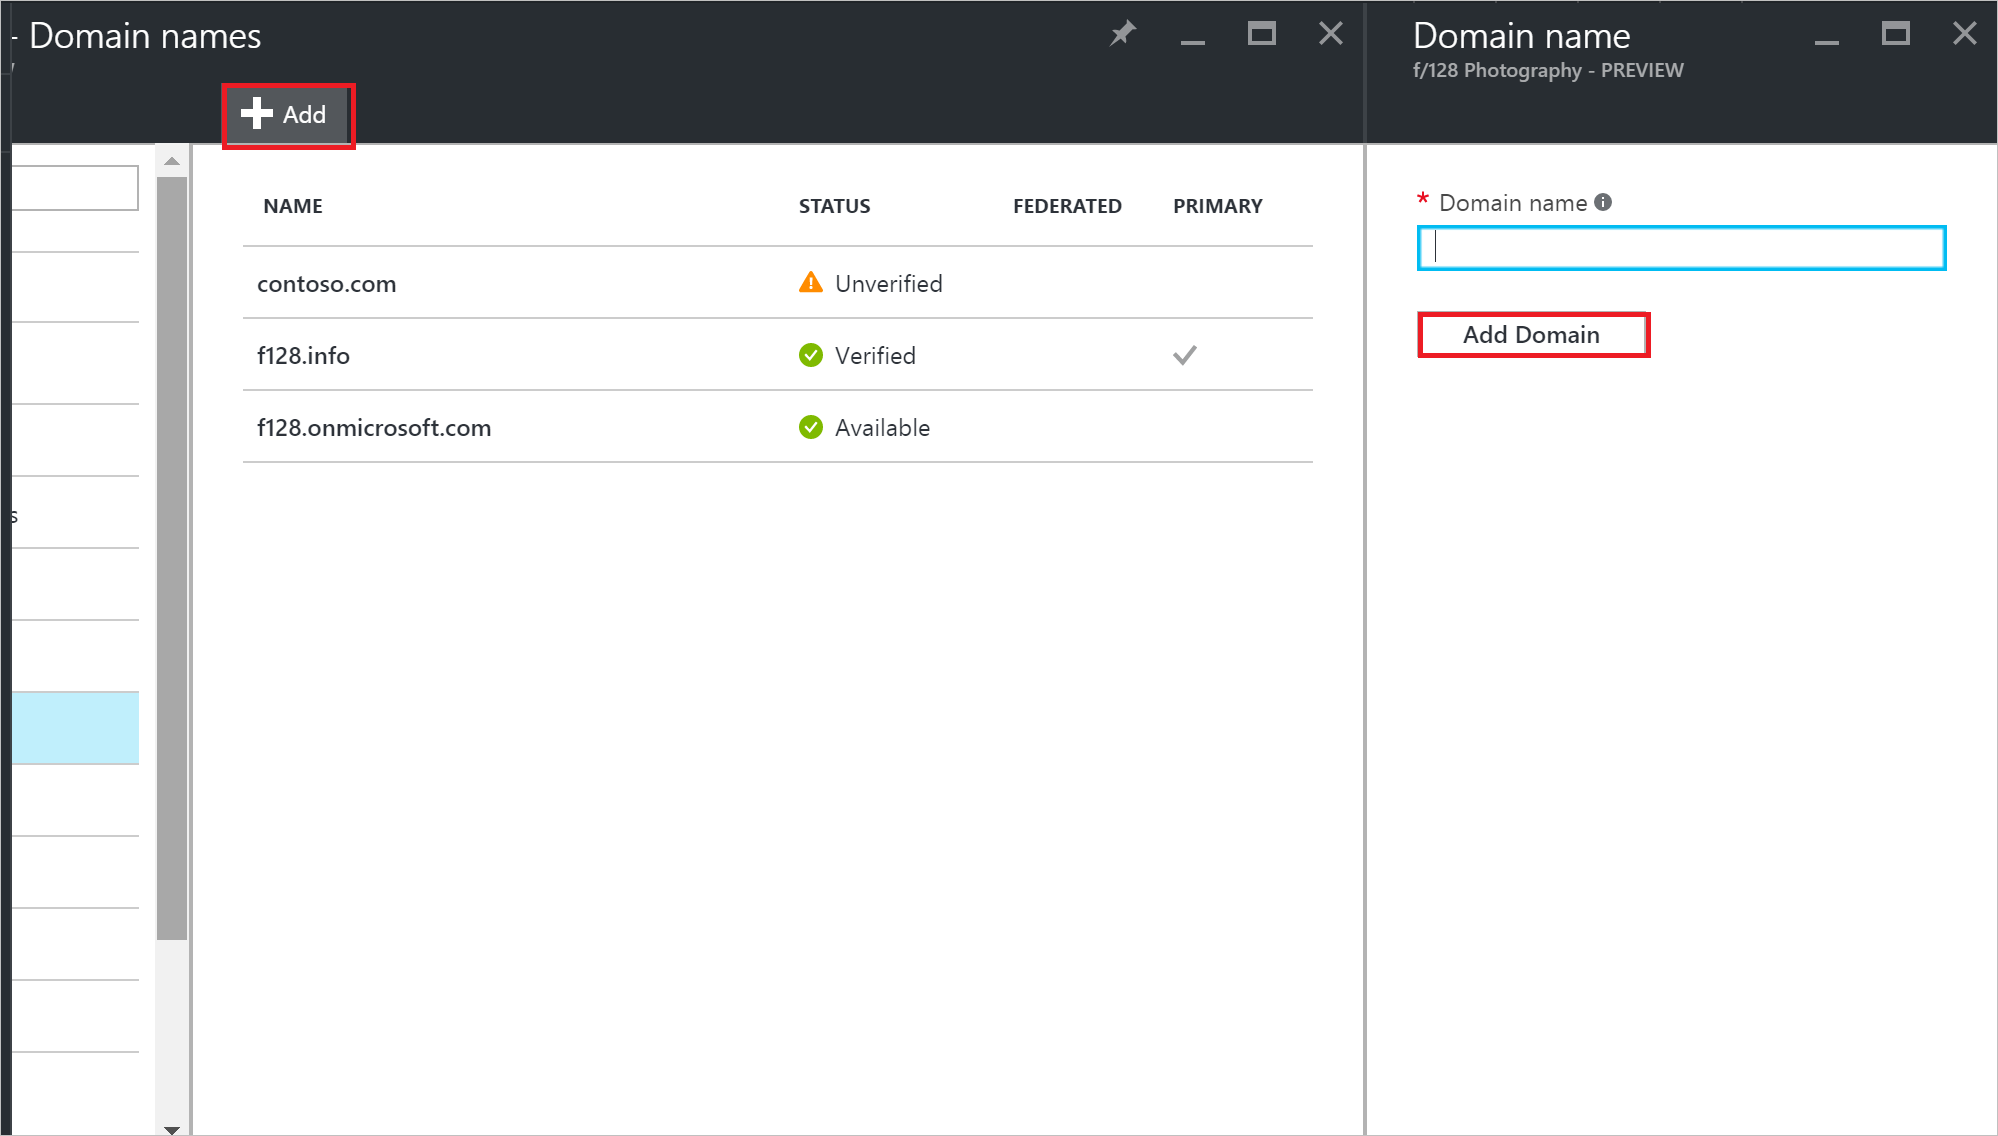 How to add a user in azure - Select The Add Command